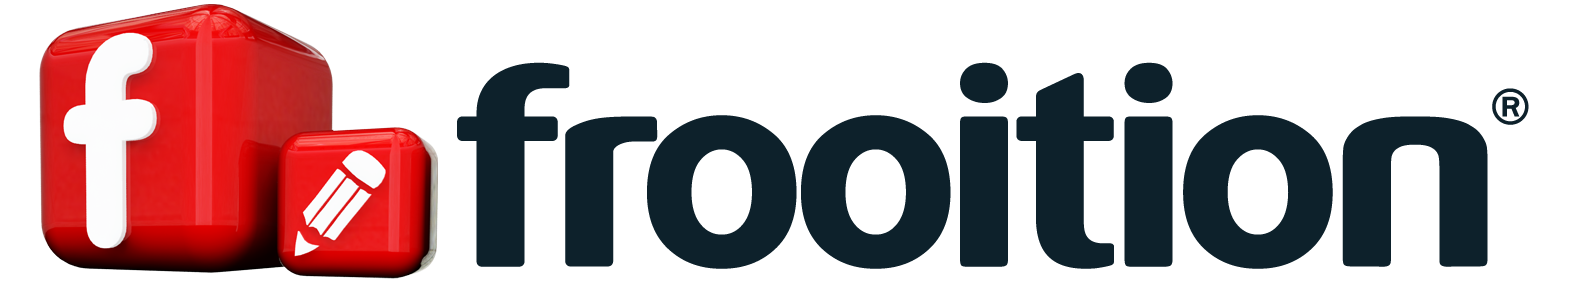 frooitionlogo.png